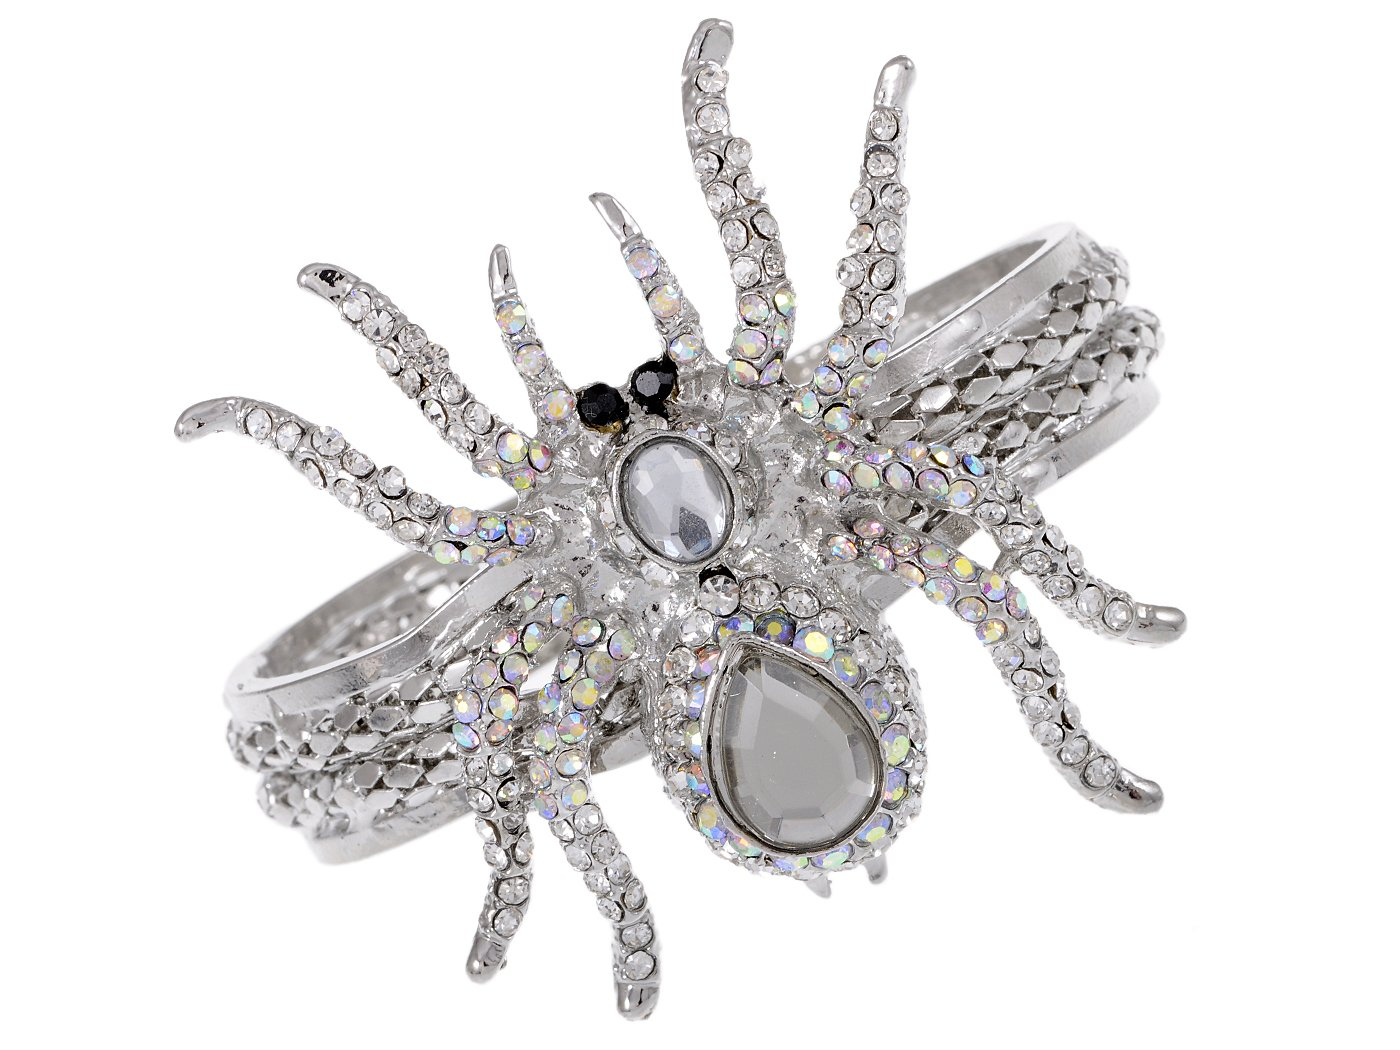 Alilang Silvery Metal White Clear Crystal Rhinestone Spider Bangle Bracelet Halloween